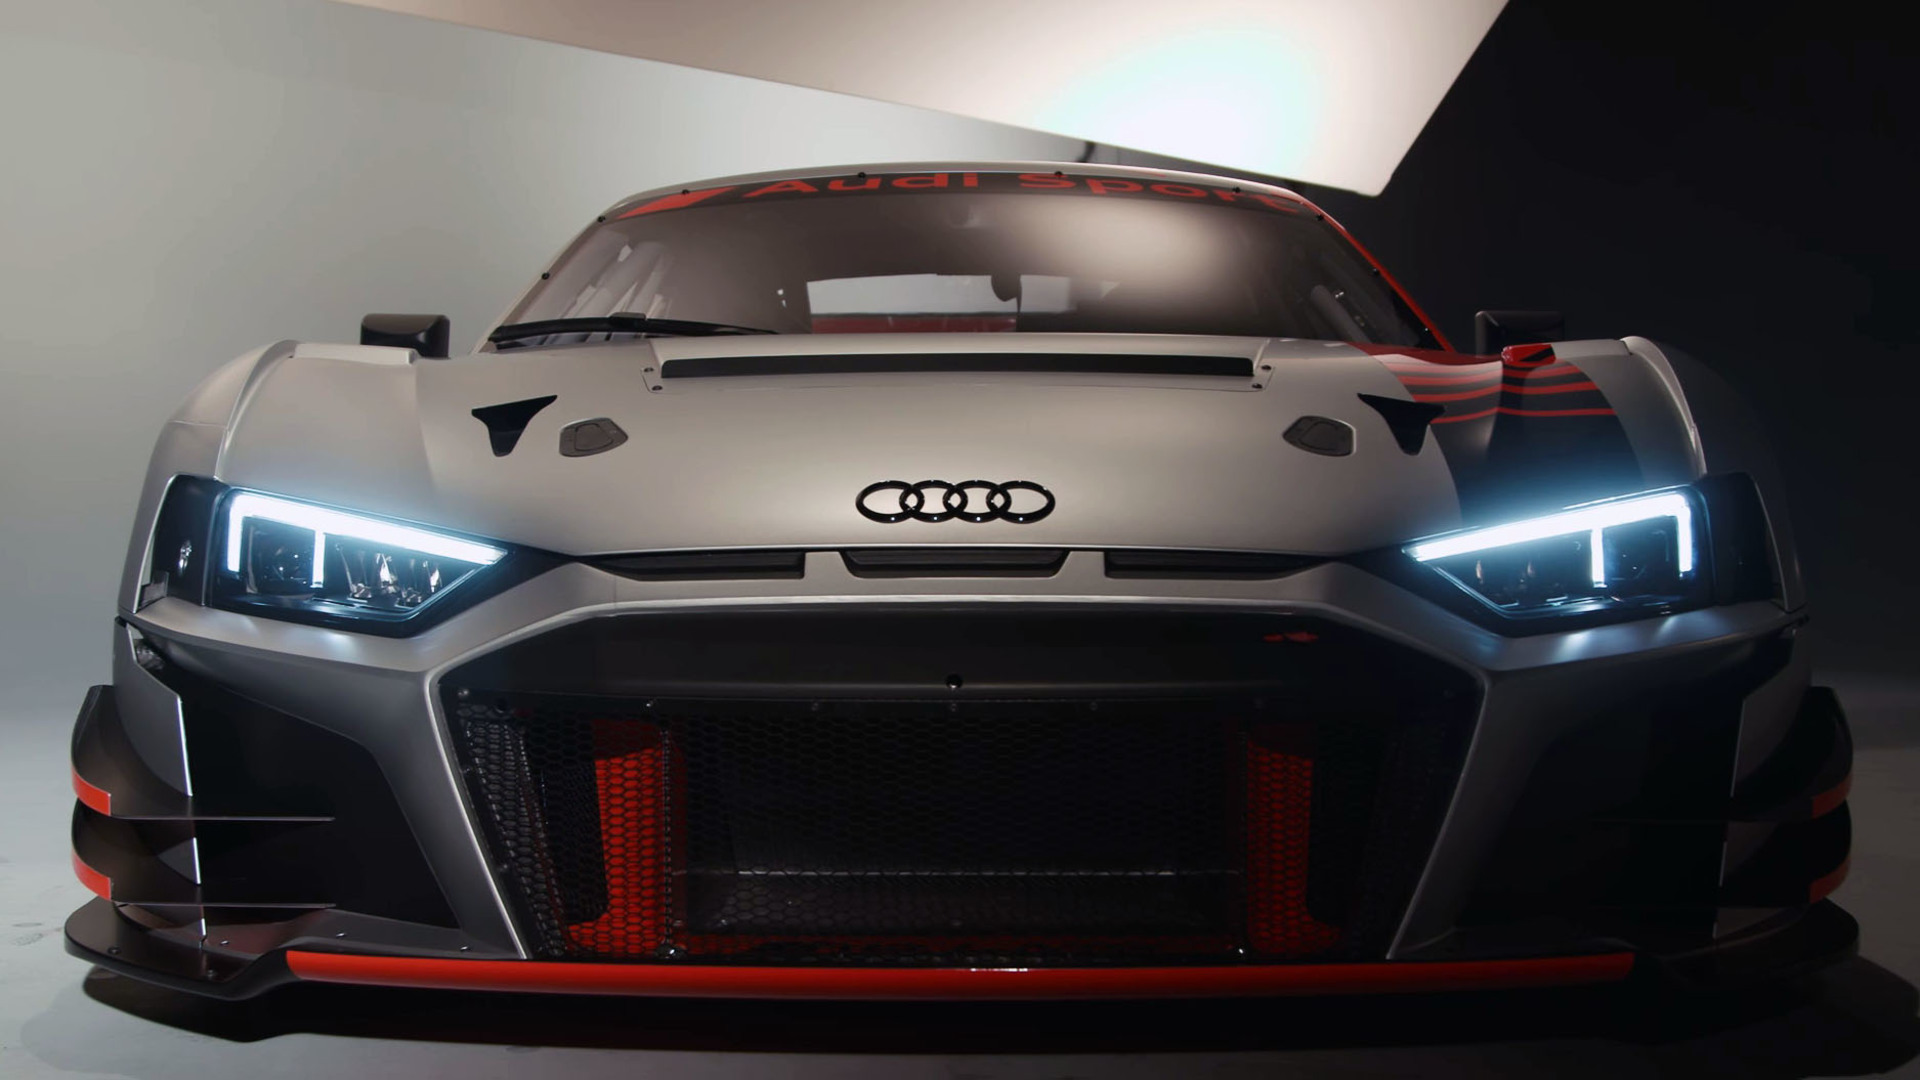 The new evolution of the Audi R8 LMS